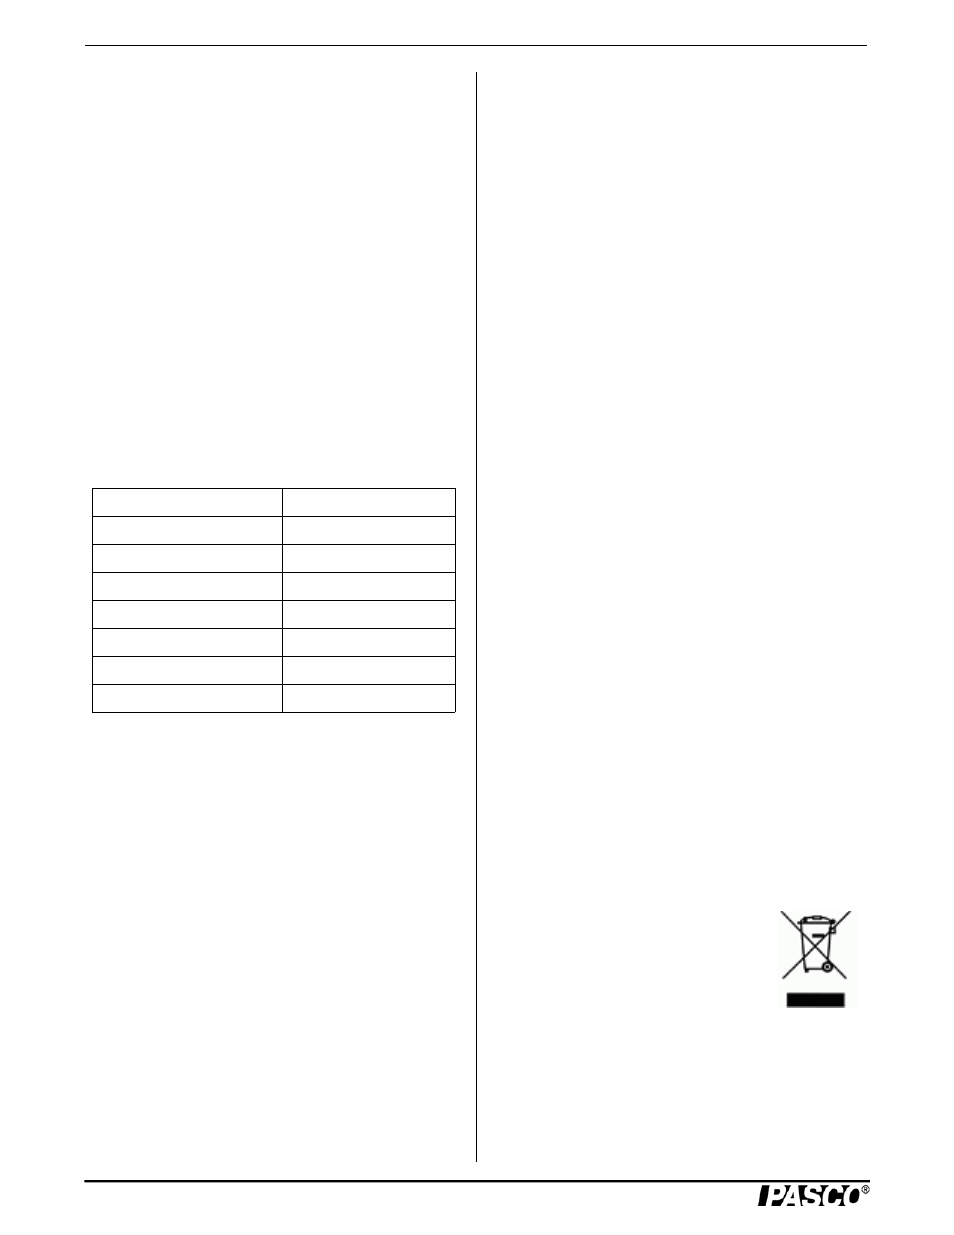 Specifications (ps-2114), Suggested activities, Technical